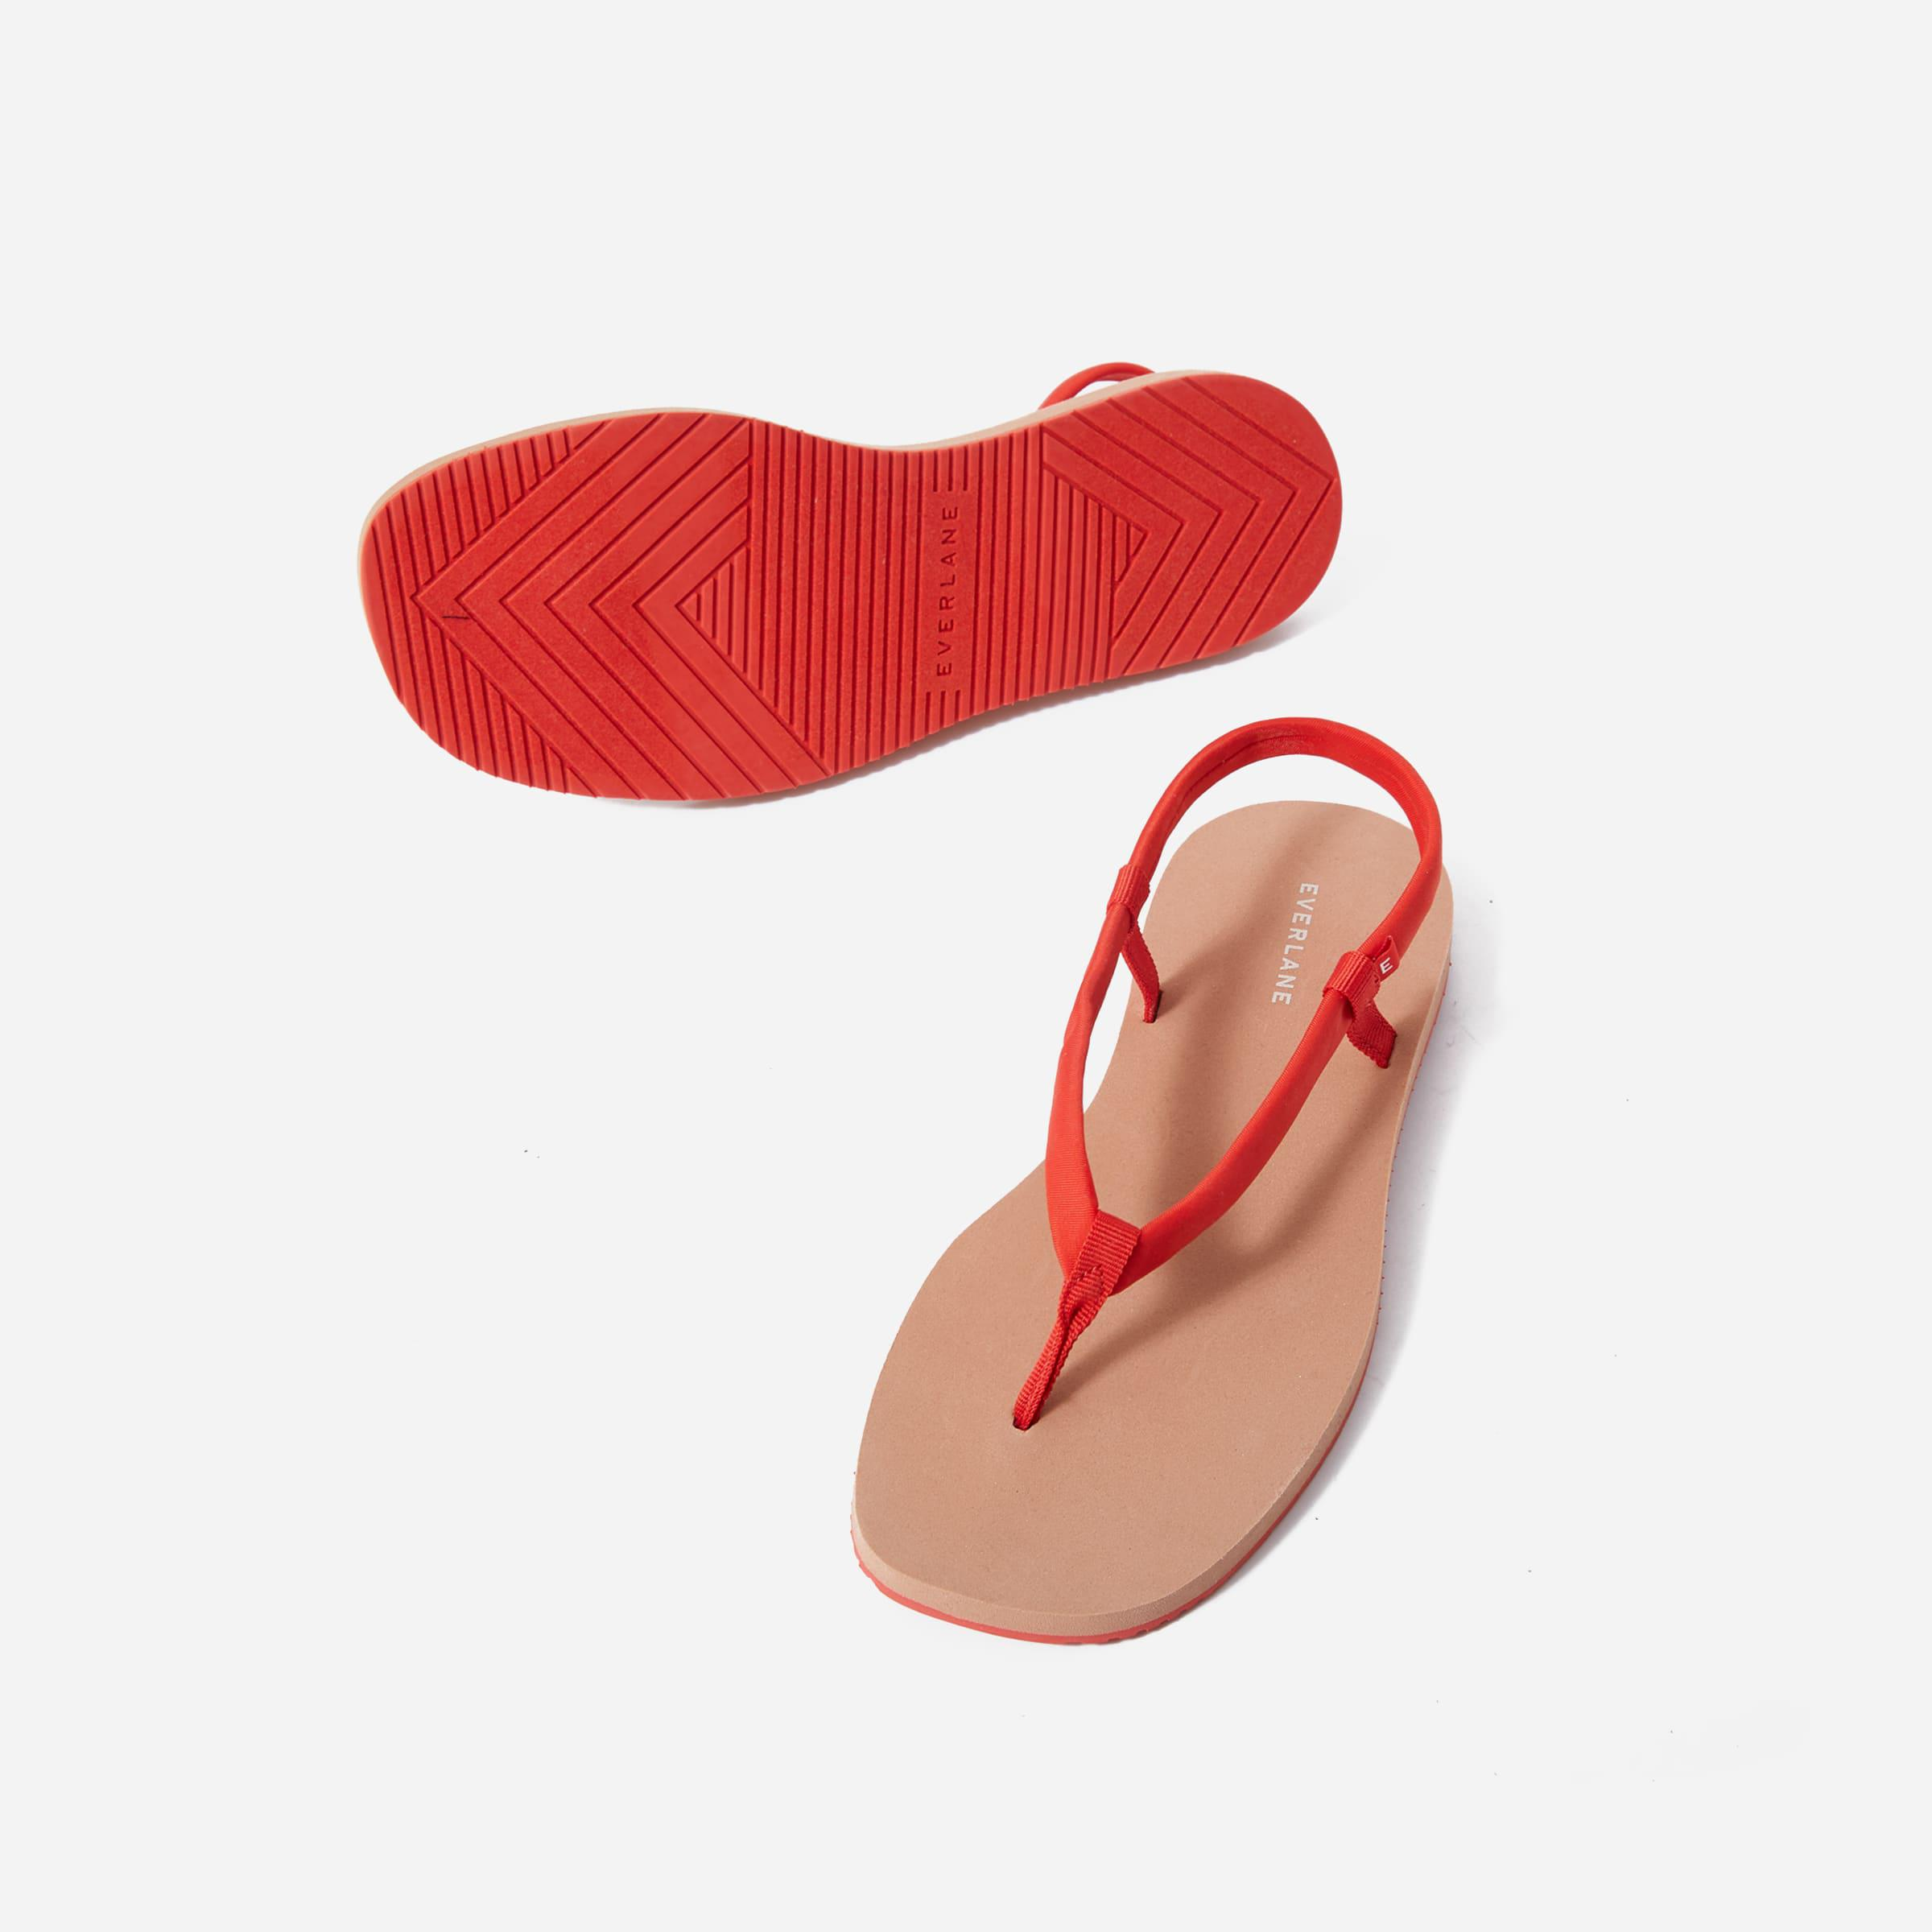 The ReNew Strappy Sandal 2